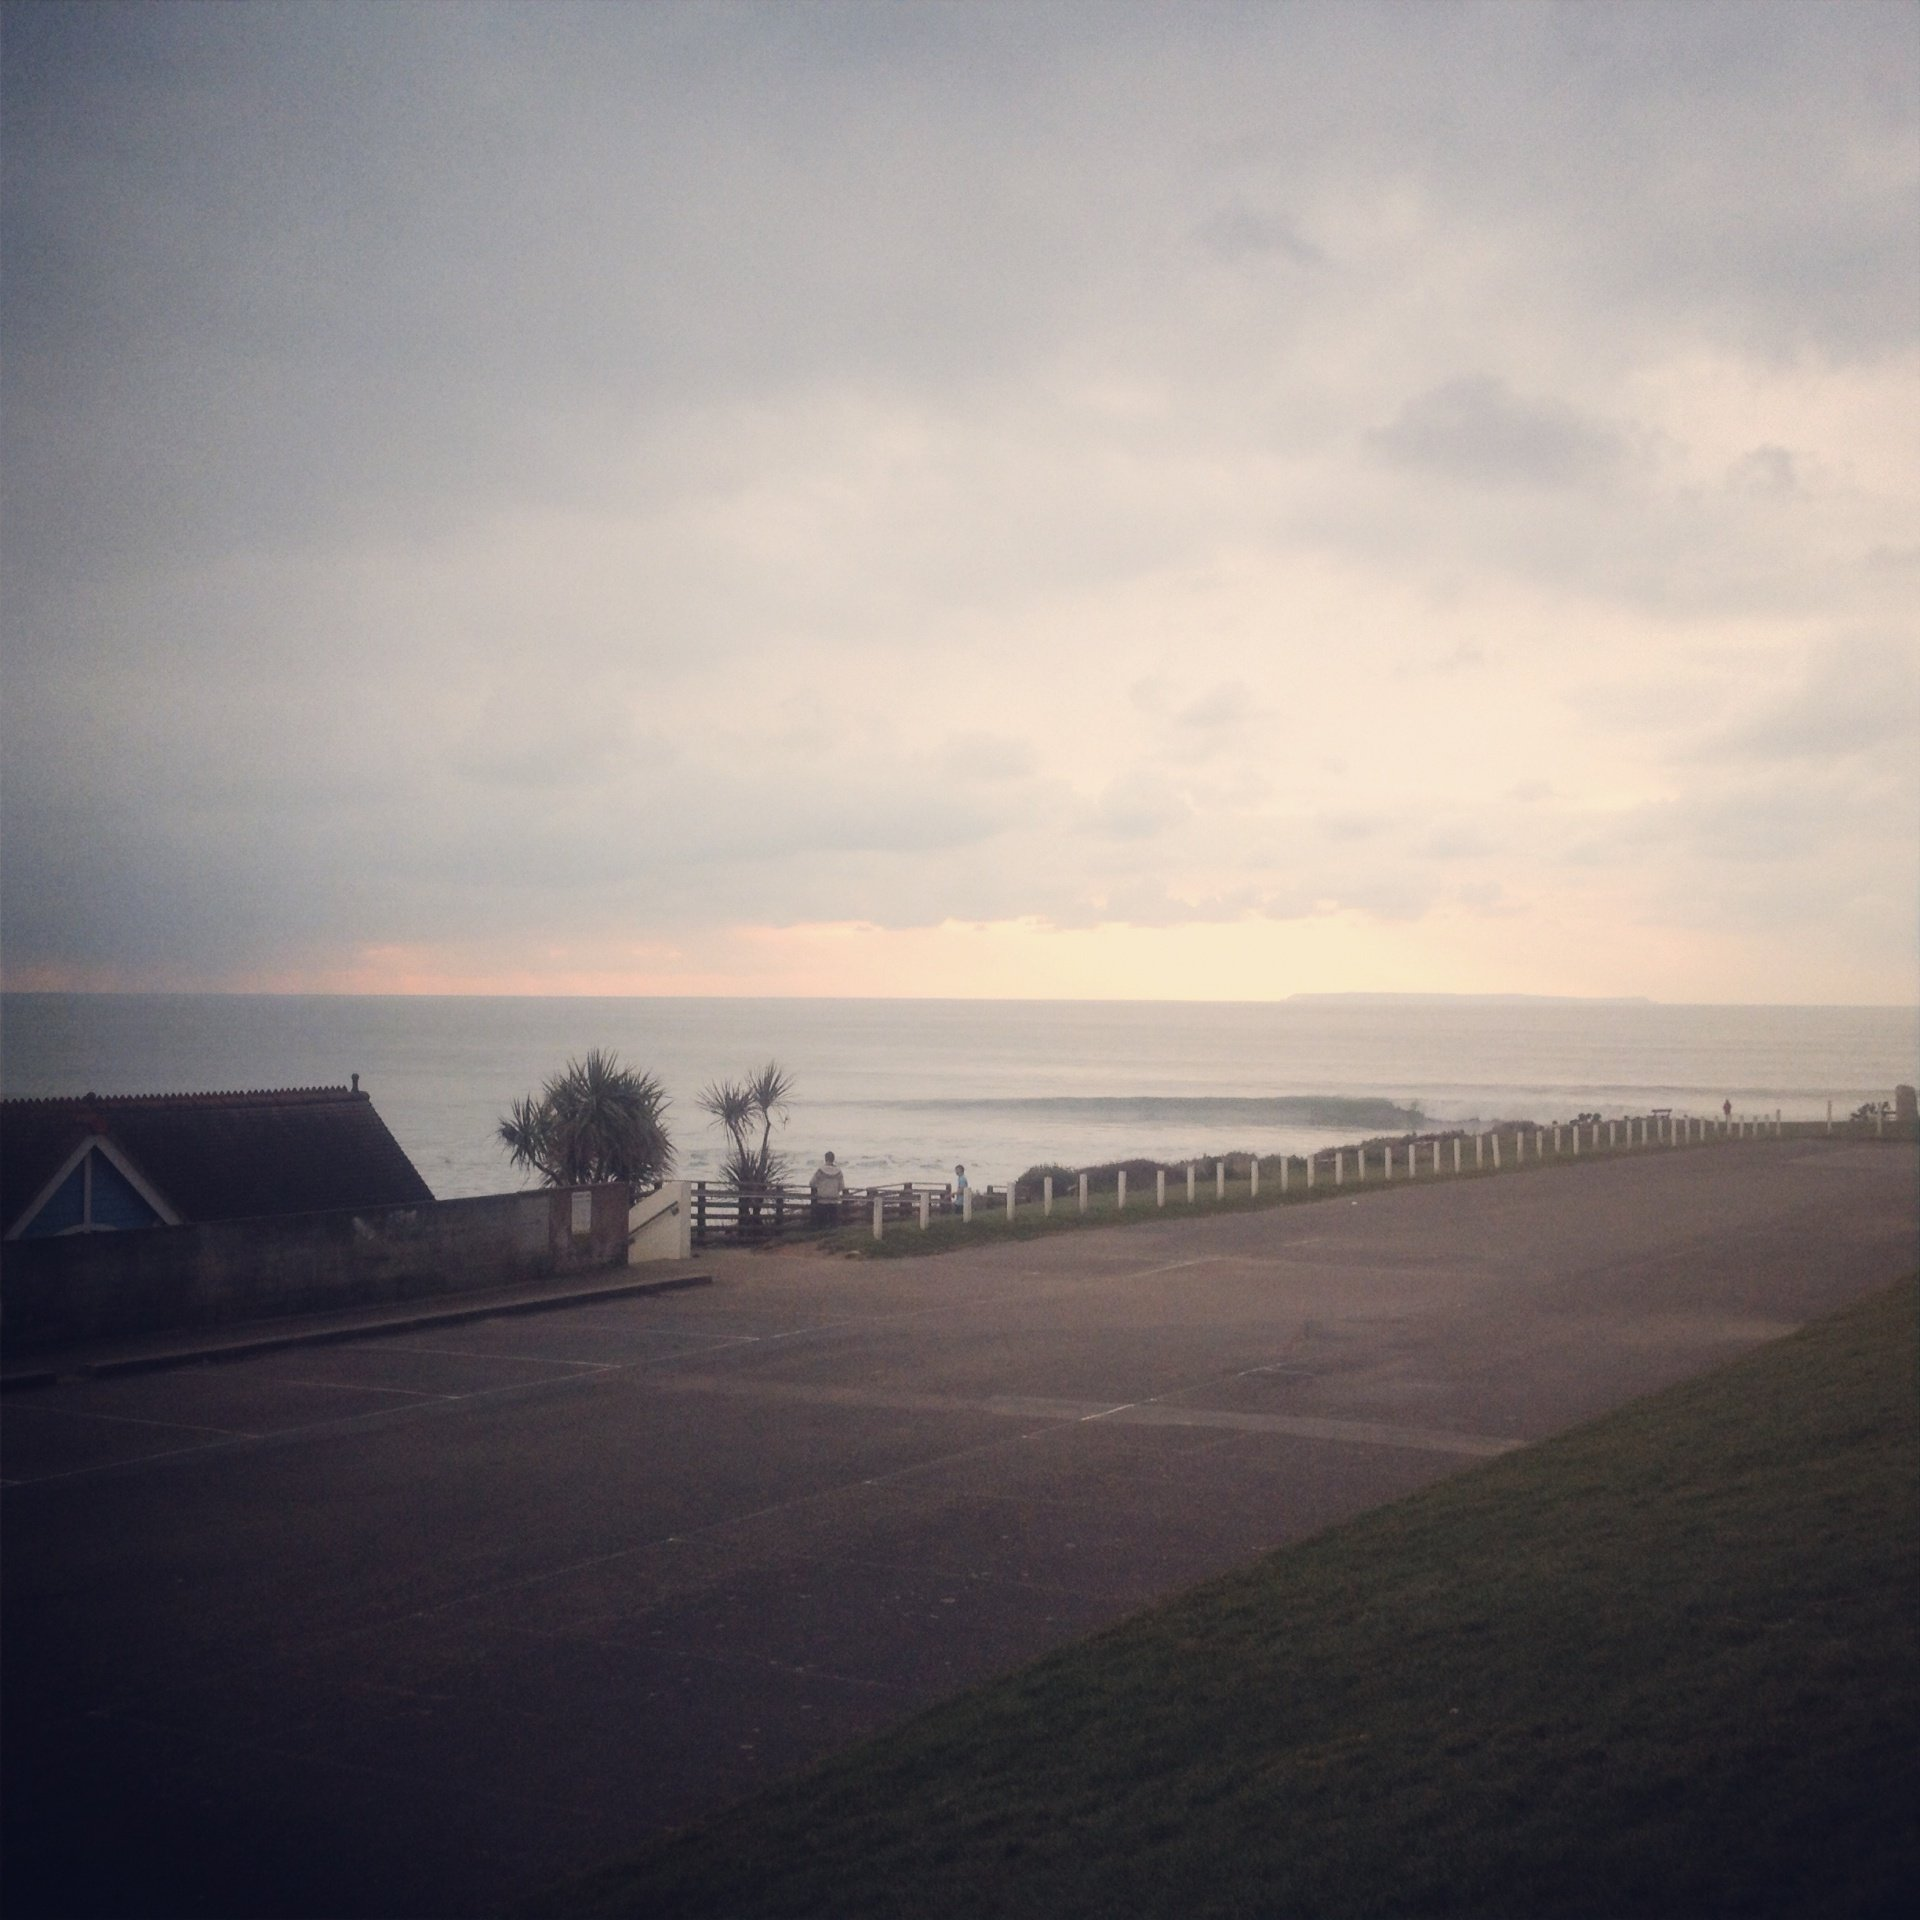 killwirk's photo of Woolacombe